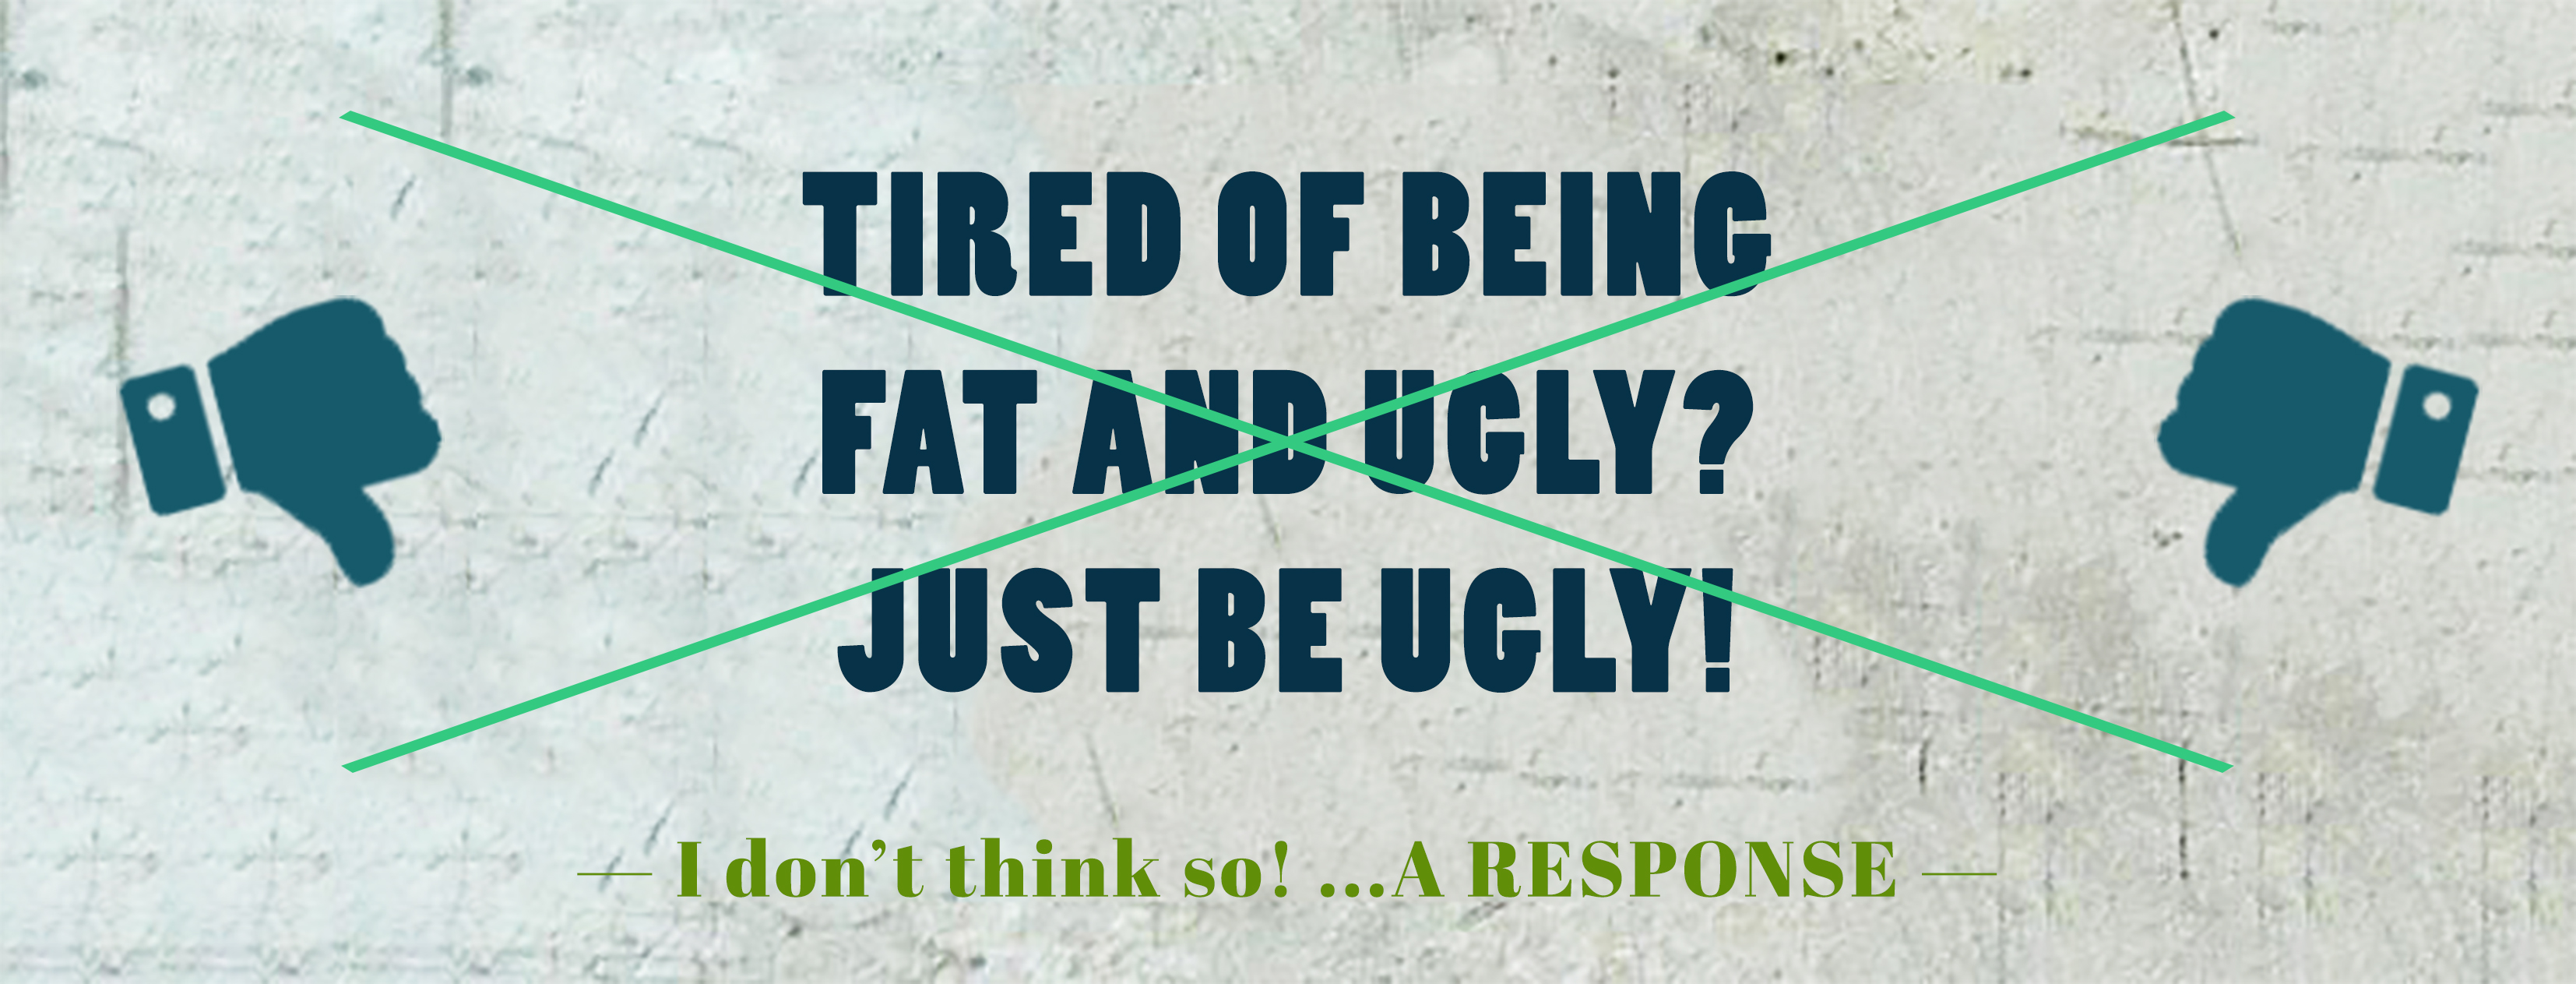 """Are You Tired of Being Fat And Ugly?"" – A Response"